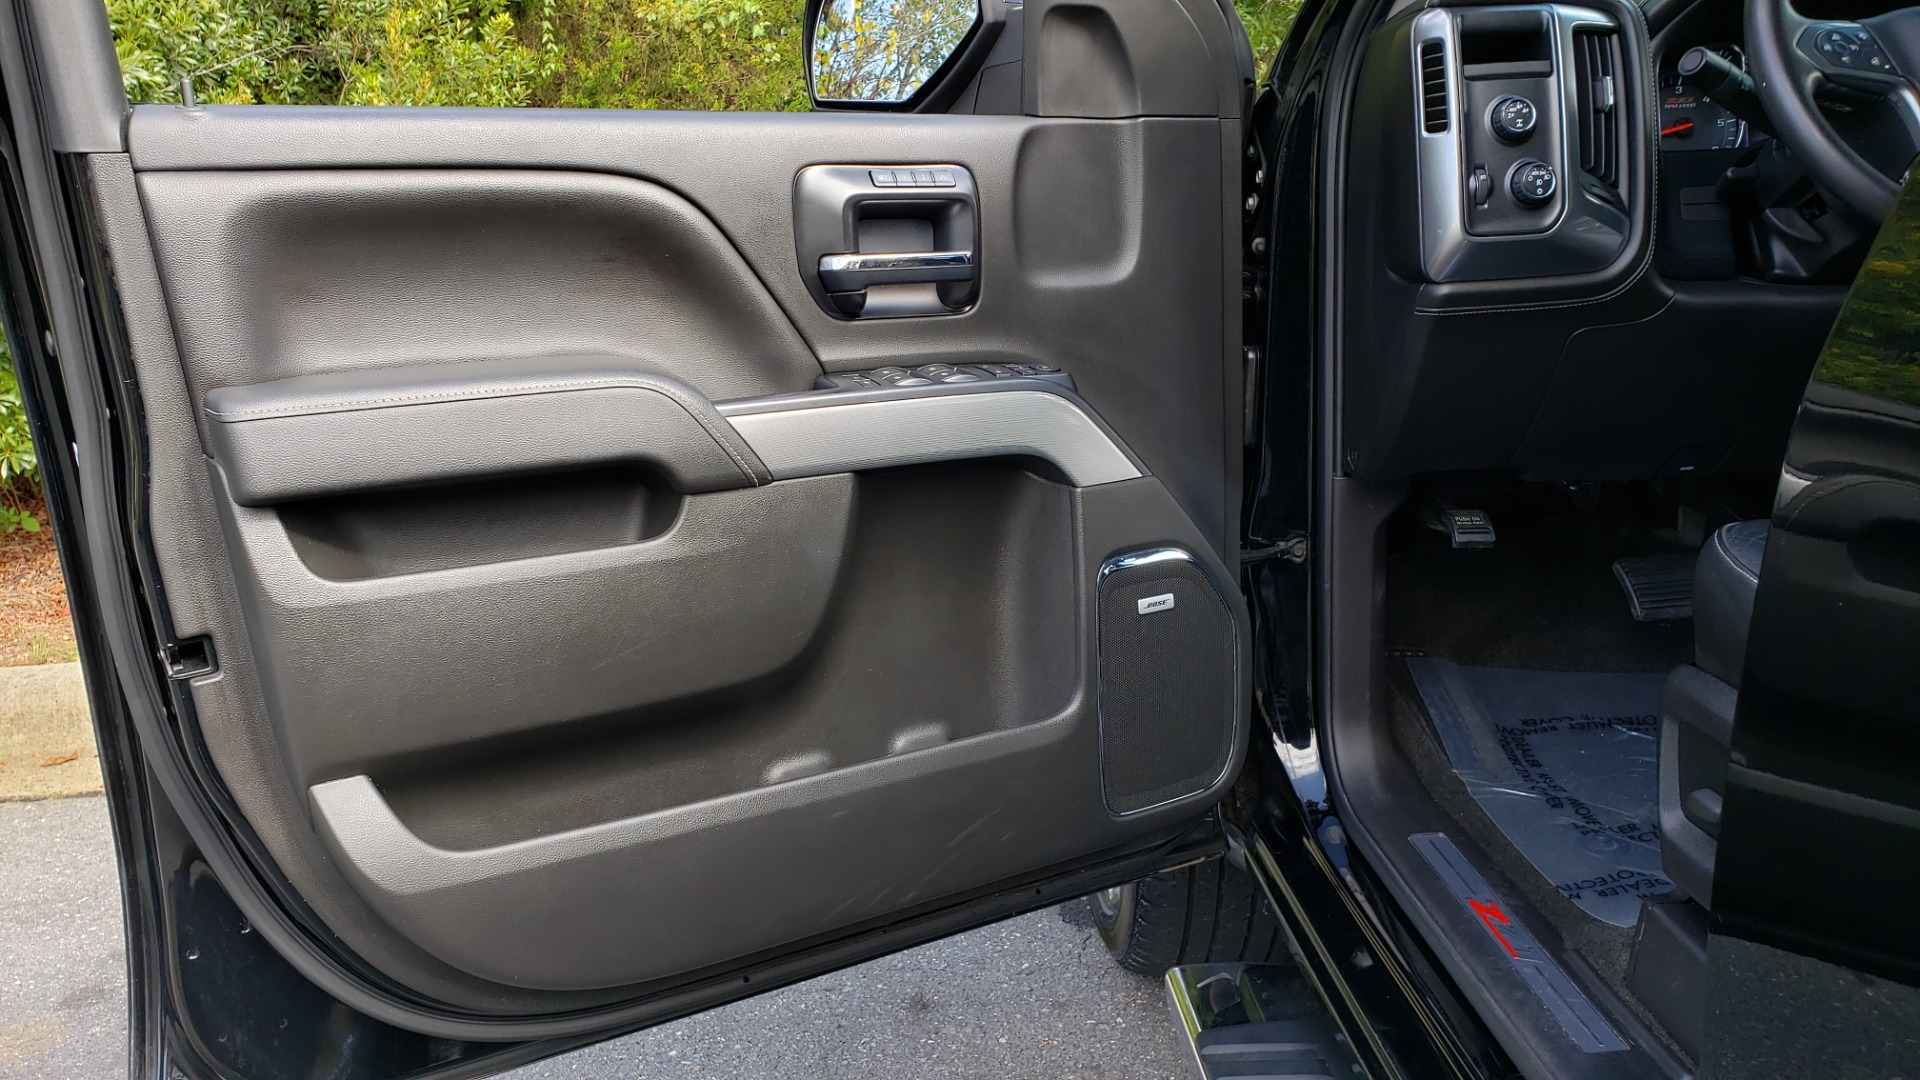 Used 2014 Chevrolet SILVERADO 1500 CREWCAB / LTZ PLUS PKG / 4WD / 2LZ / NAV / BOSE / REARVIEW for sale Sold at Formula Imports in Charlotte NC 28227 34